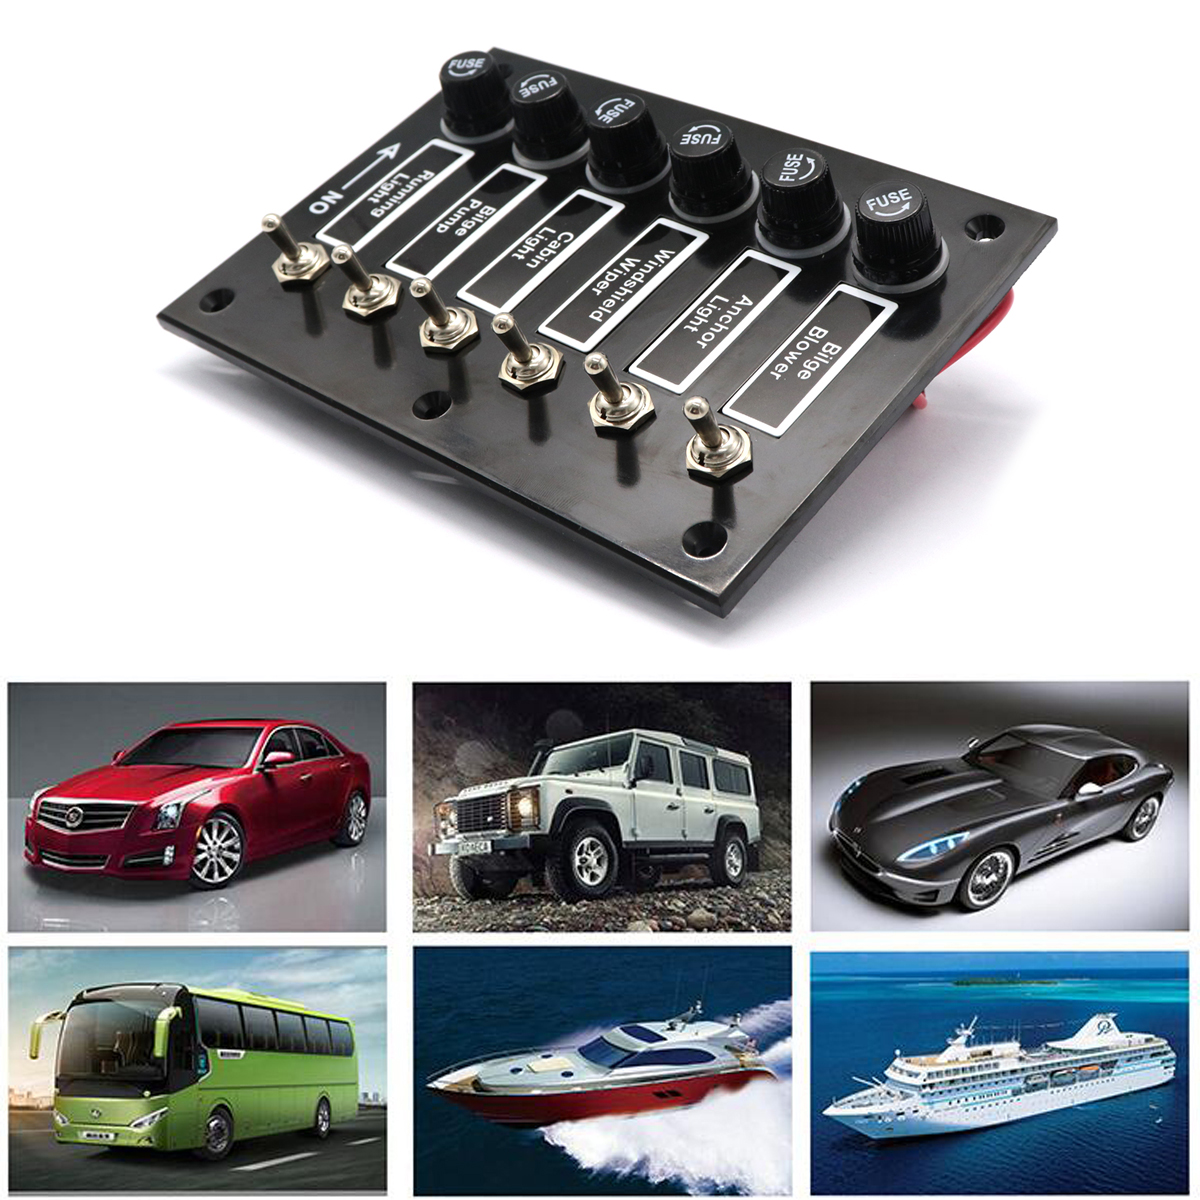 6 Gang DC 12V/24V Fused ON/OFF Toggle Switch Panel for Marine Boat Caravan RV With 6 Screws Car Accessories 5